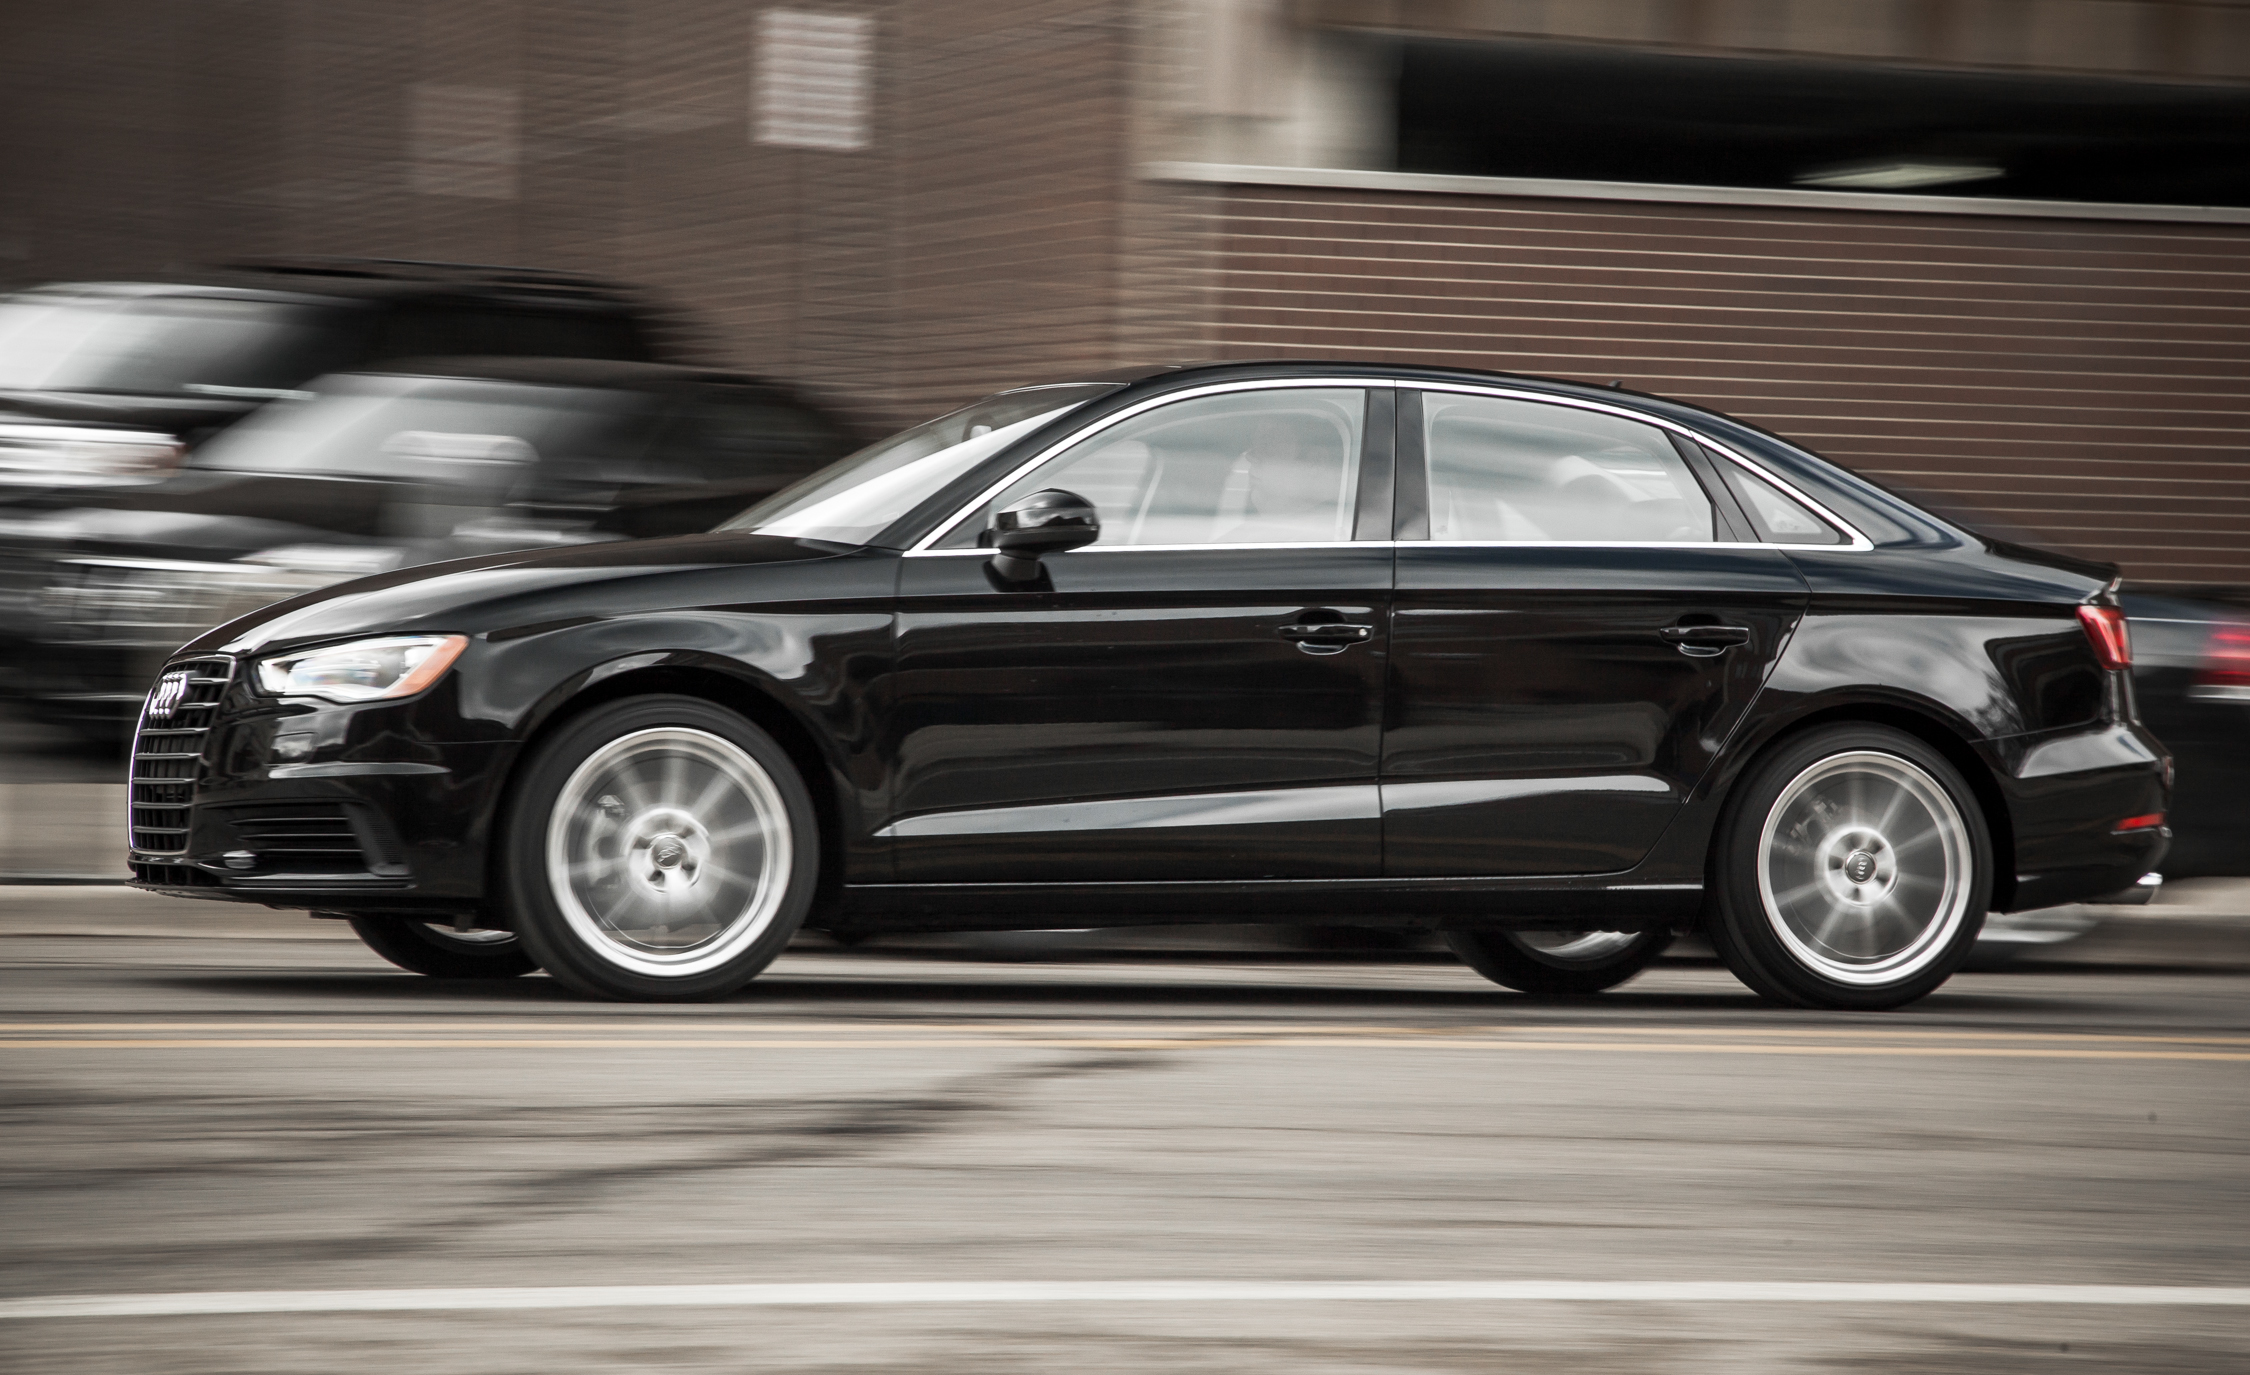 2015 Audi A3 TDI Test Drive Side View (Photo 49 of 50)